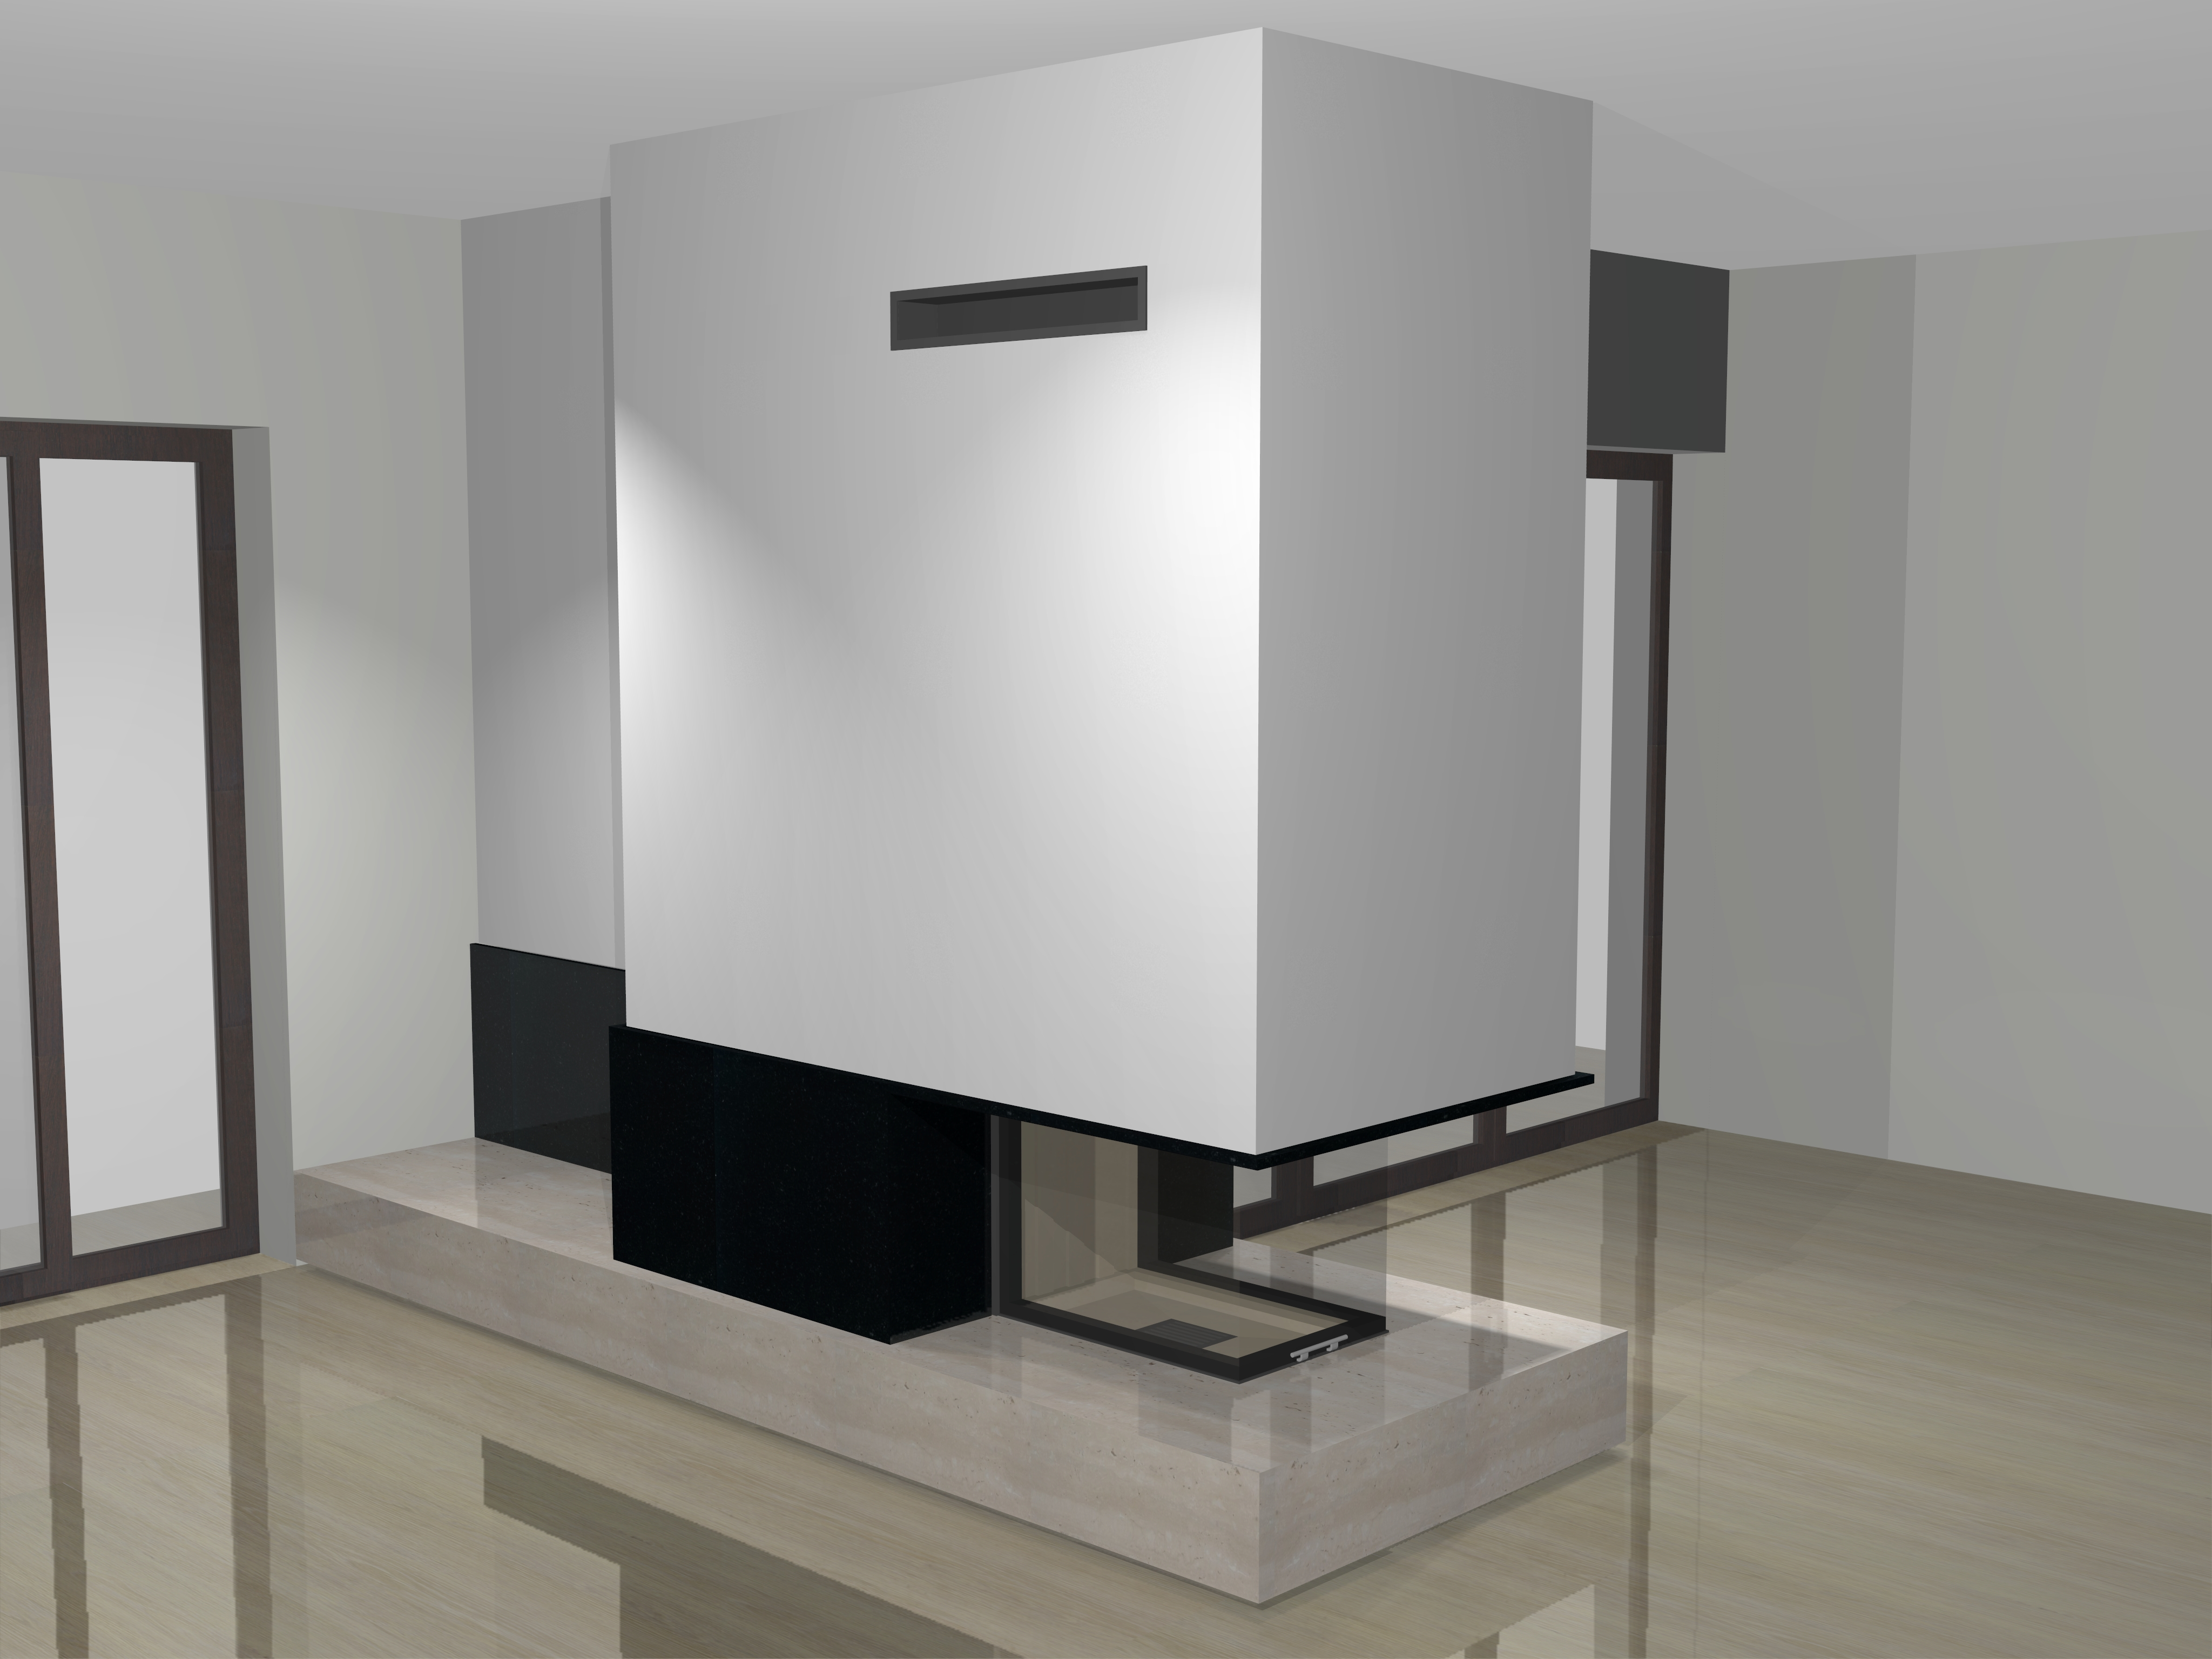 dreiseitiger kamin a 26 1 mit spartherm mit montage www. Black Bedroom Furniture Sets. Home Design Ideas